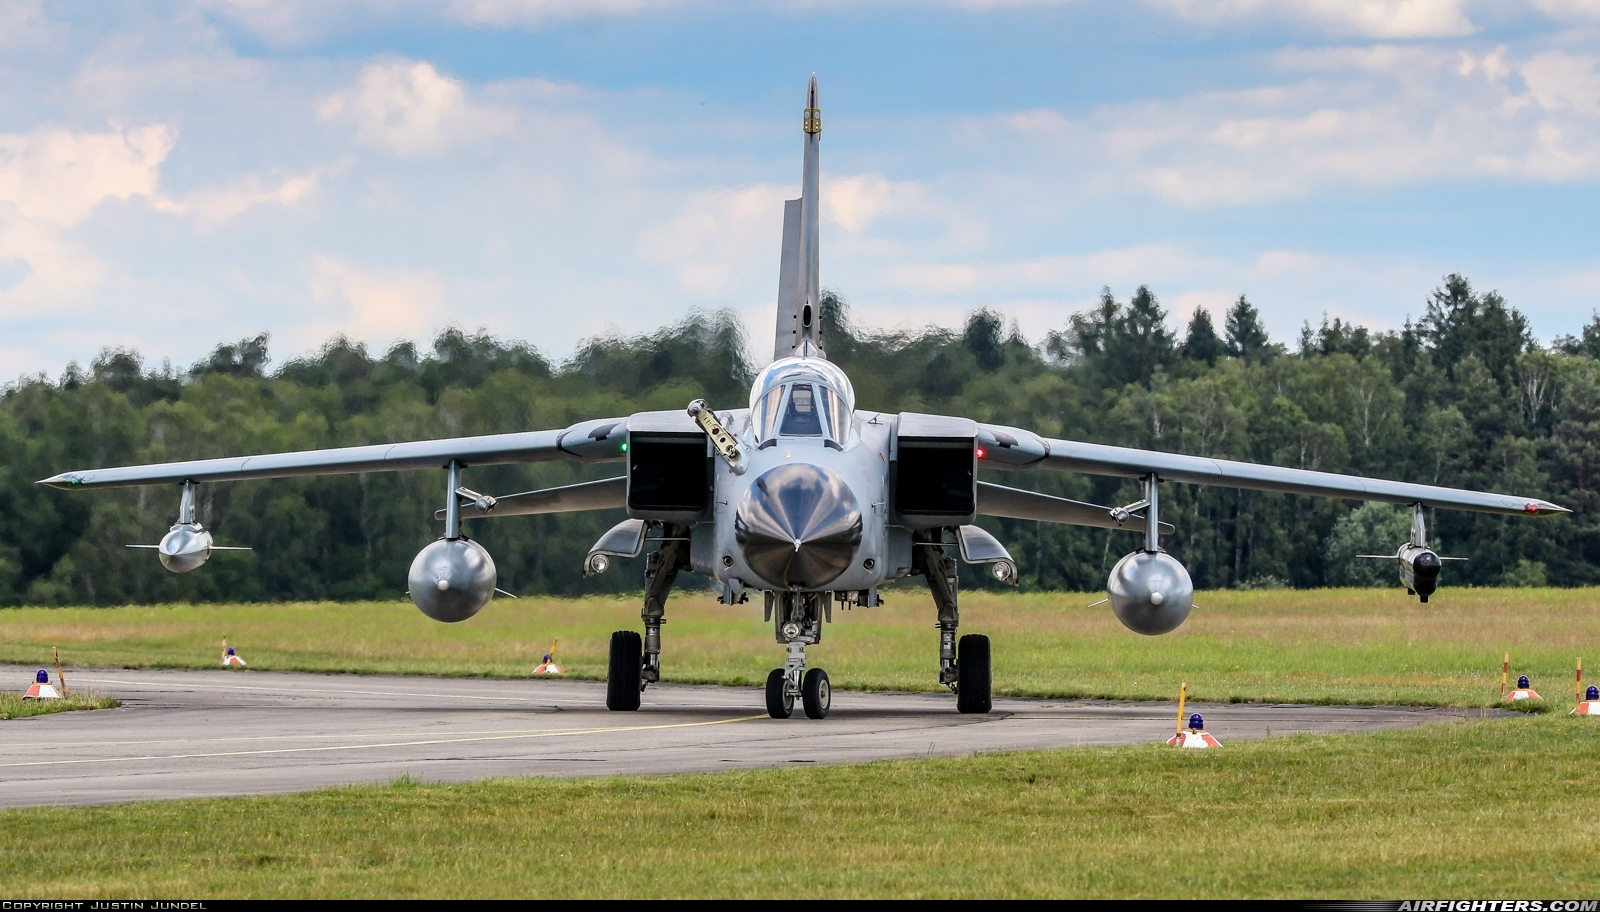 45 69 cn 672 gs213 4269 panavia tornado ids photo by justin jundel airfighters com airfighters com